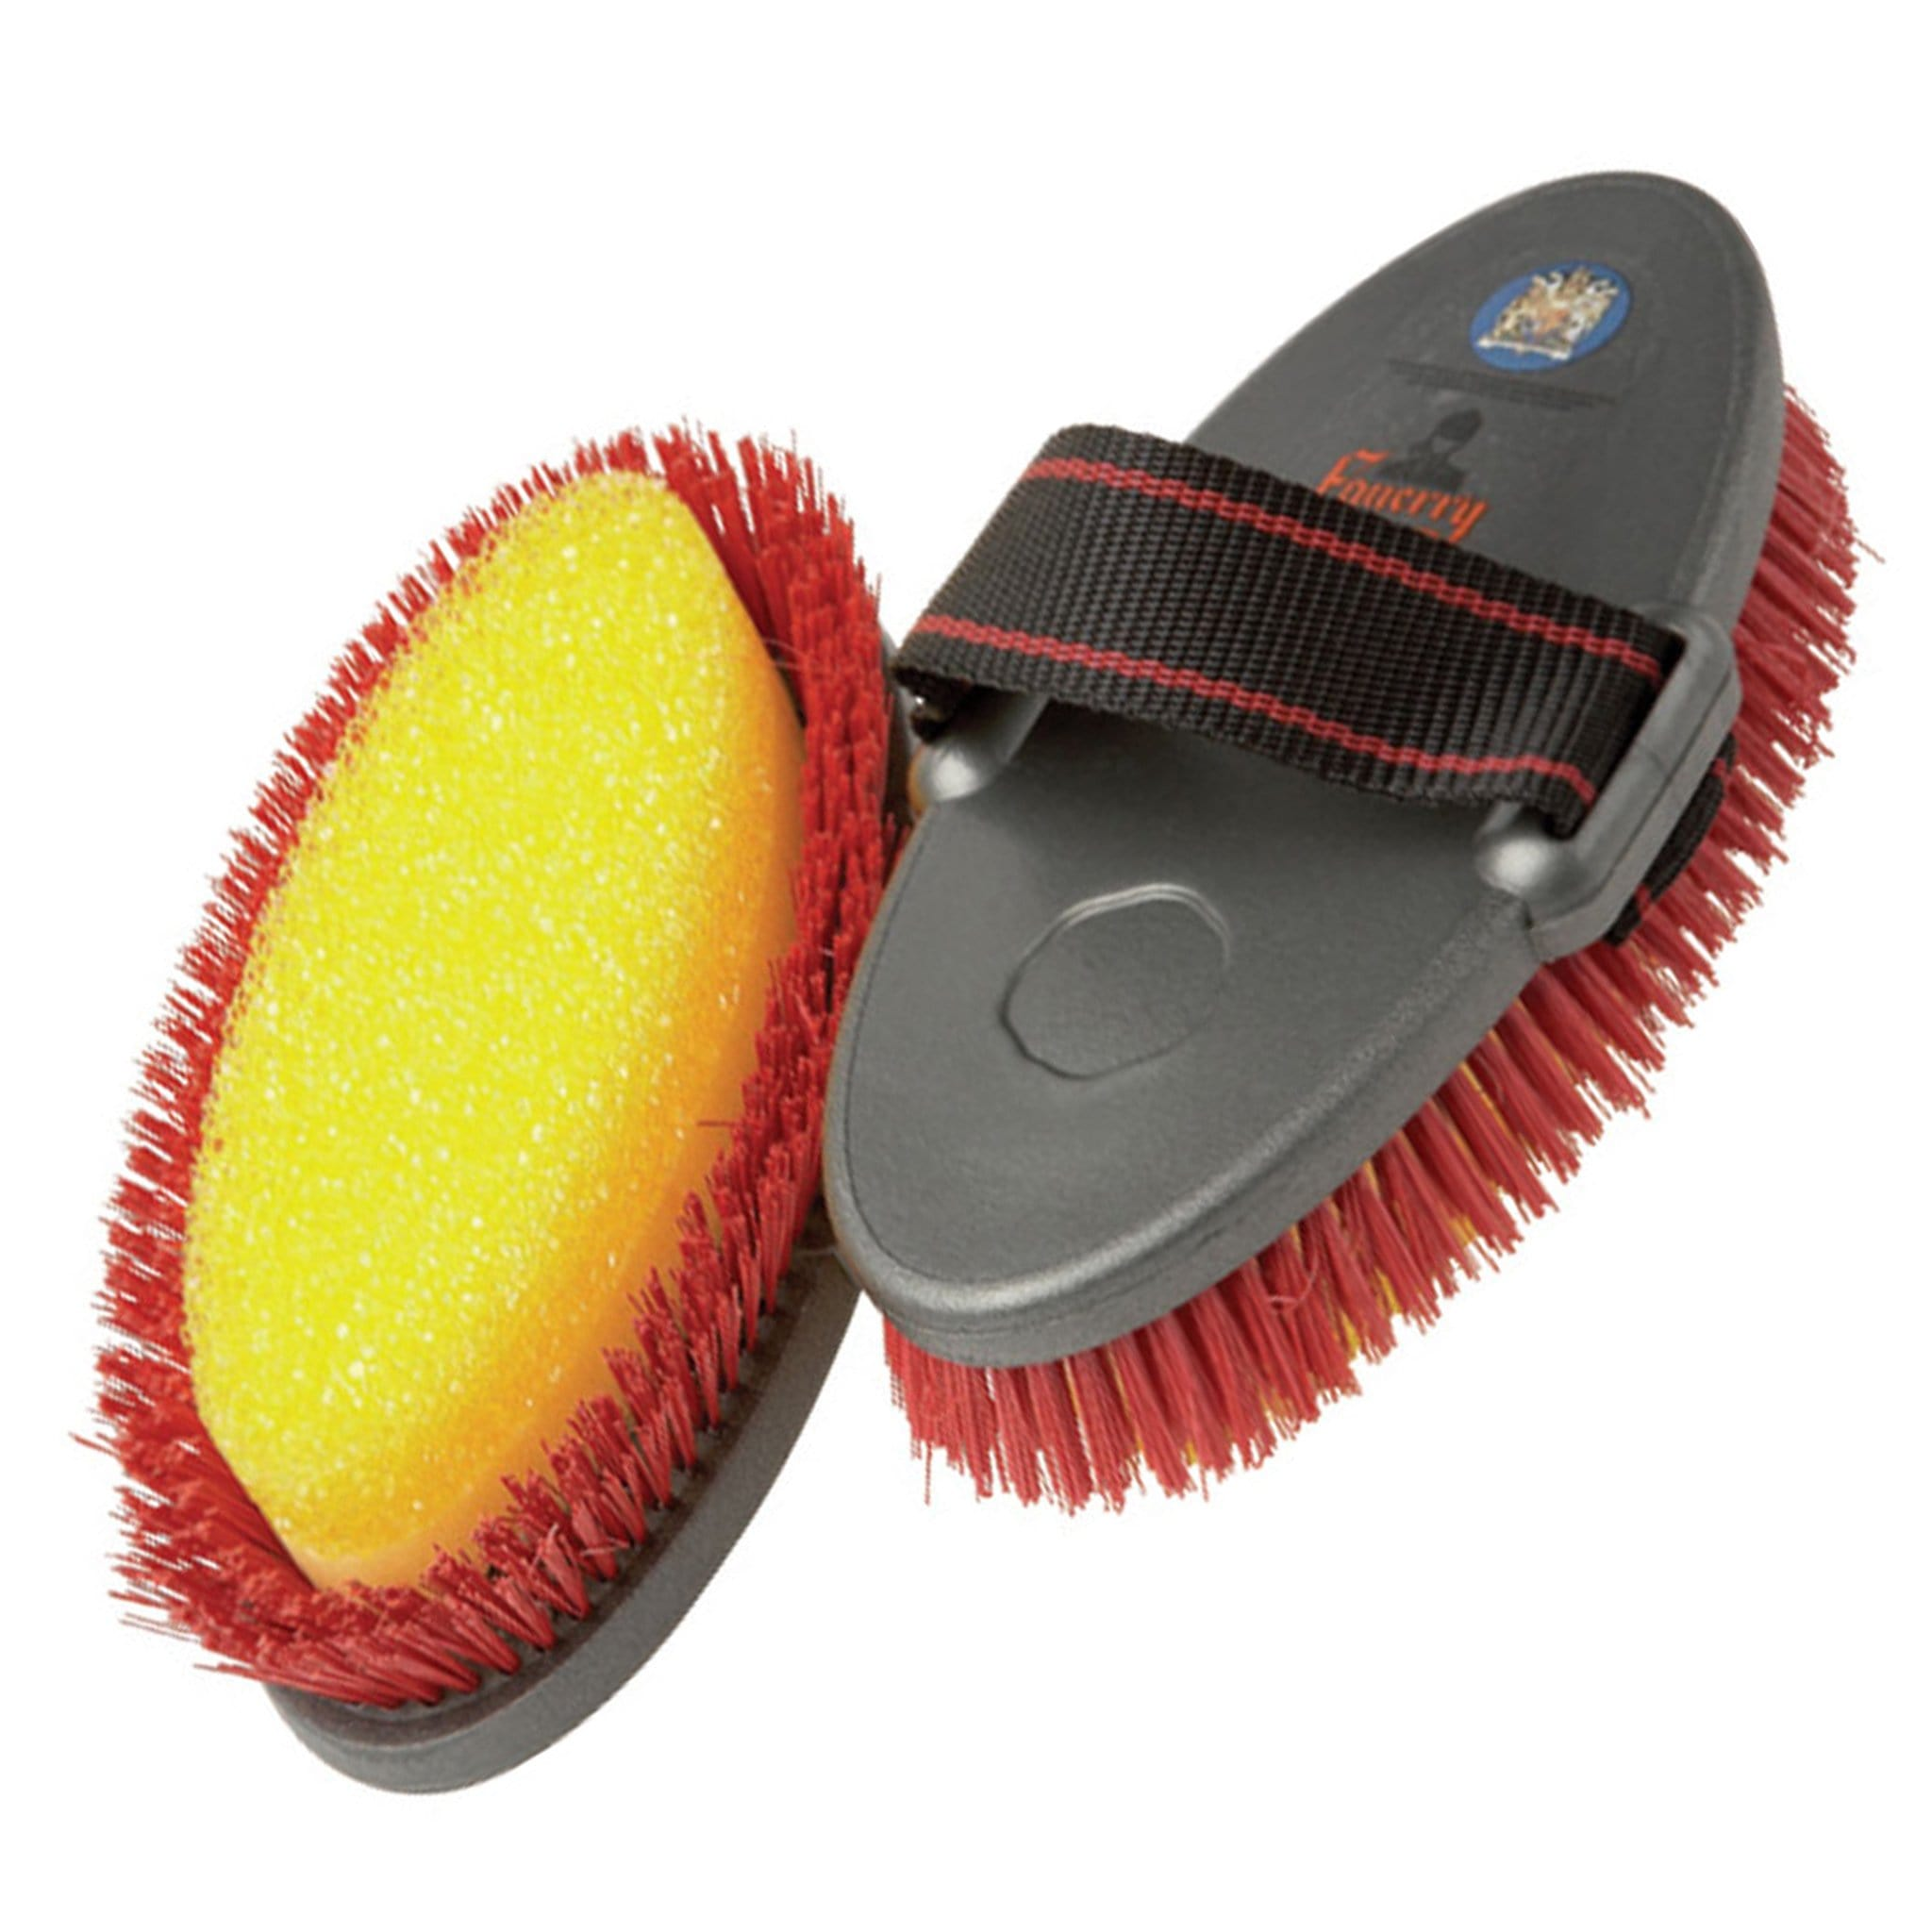 Equerry Wash Brush 4773